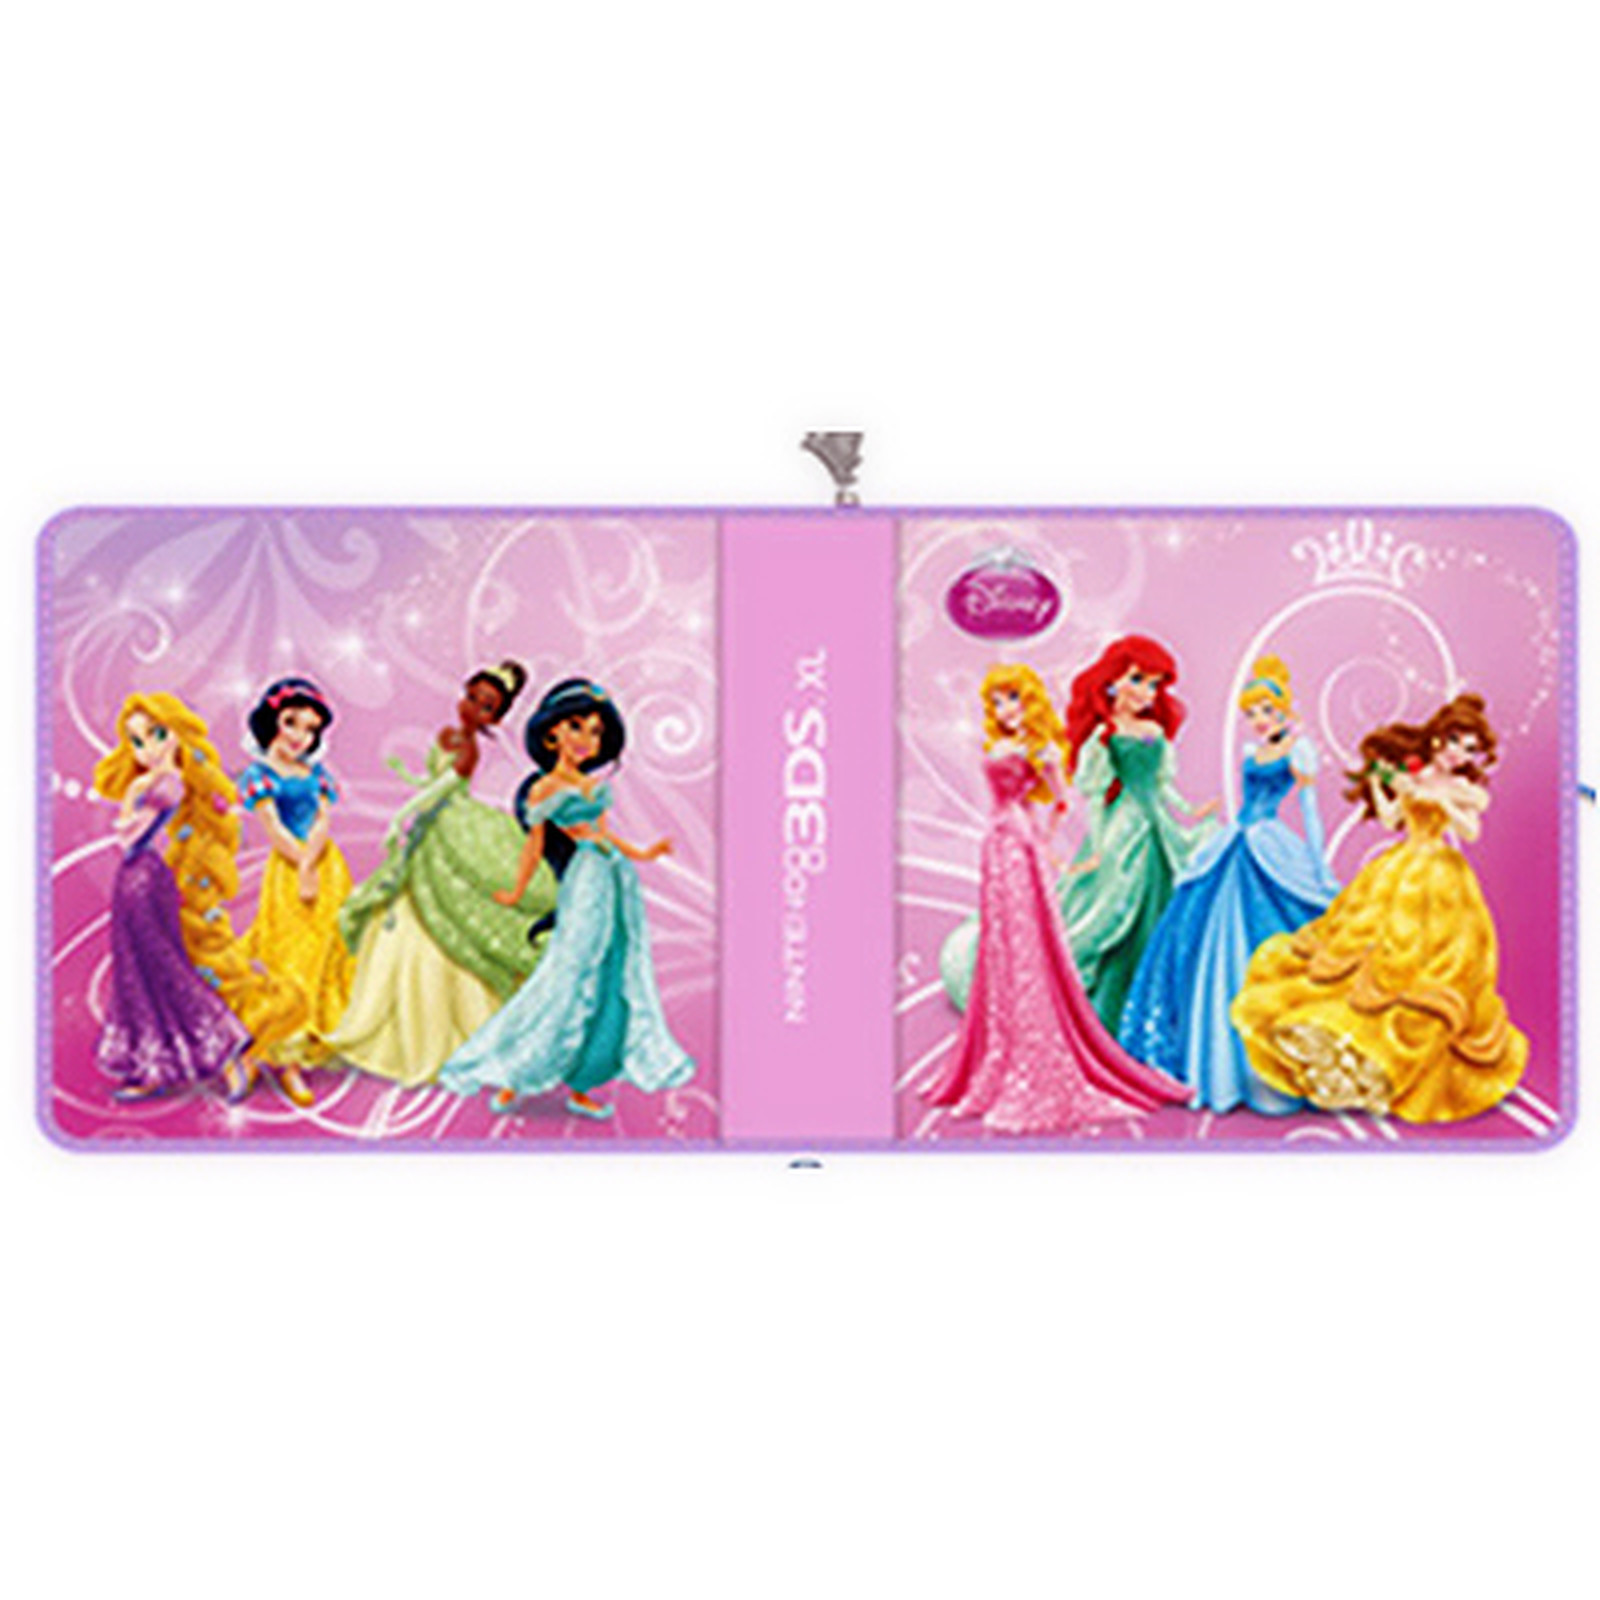 PDP Pull and Go Universal - Disney Princess (Nintendo 3DS, 3DS XL)